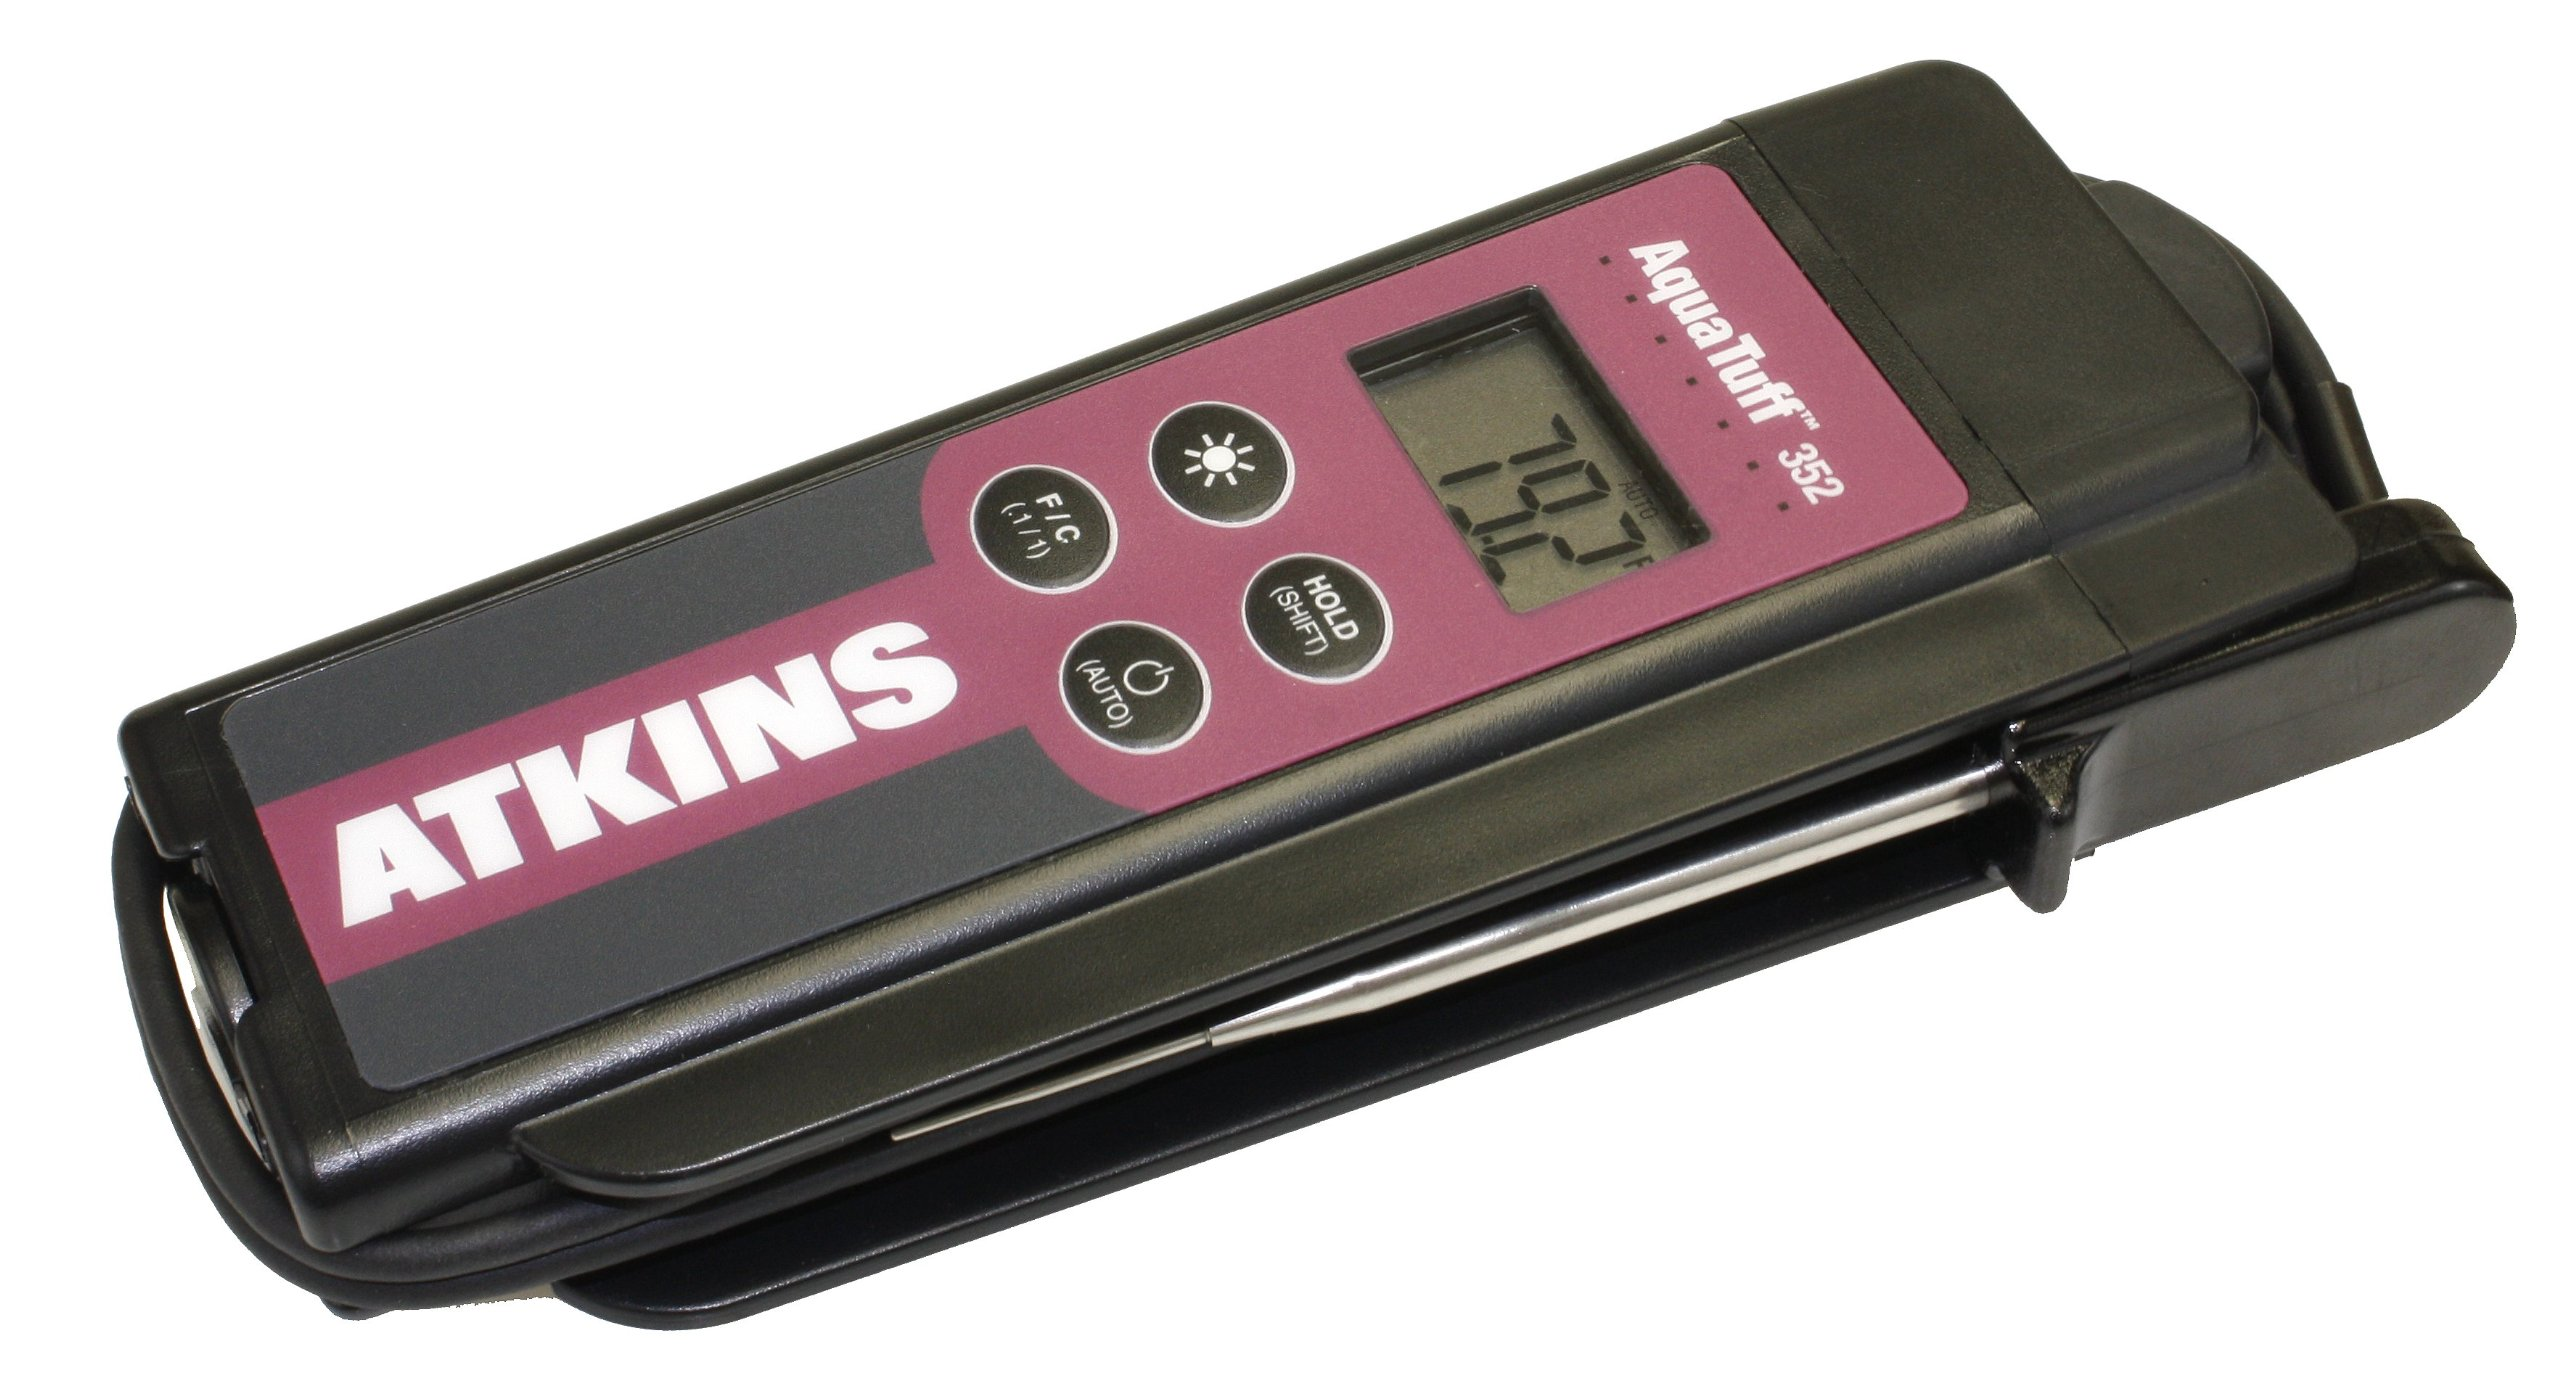 Cooper-Atkins 35240 Series 352 AquaTuff Wrap&Stow Waterproof Thermocouple Instruments with MicroNeedle Probe, -100 to +500 degrees F Temperature Range